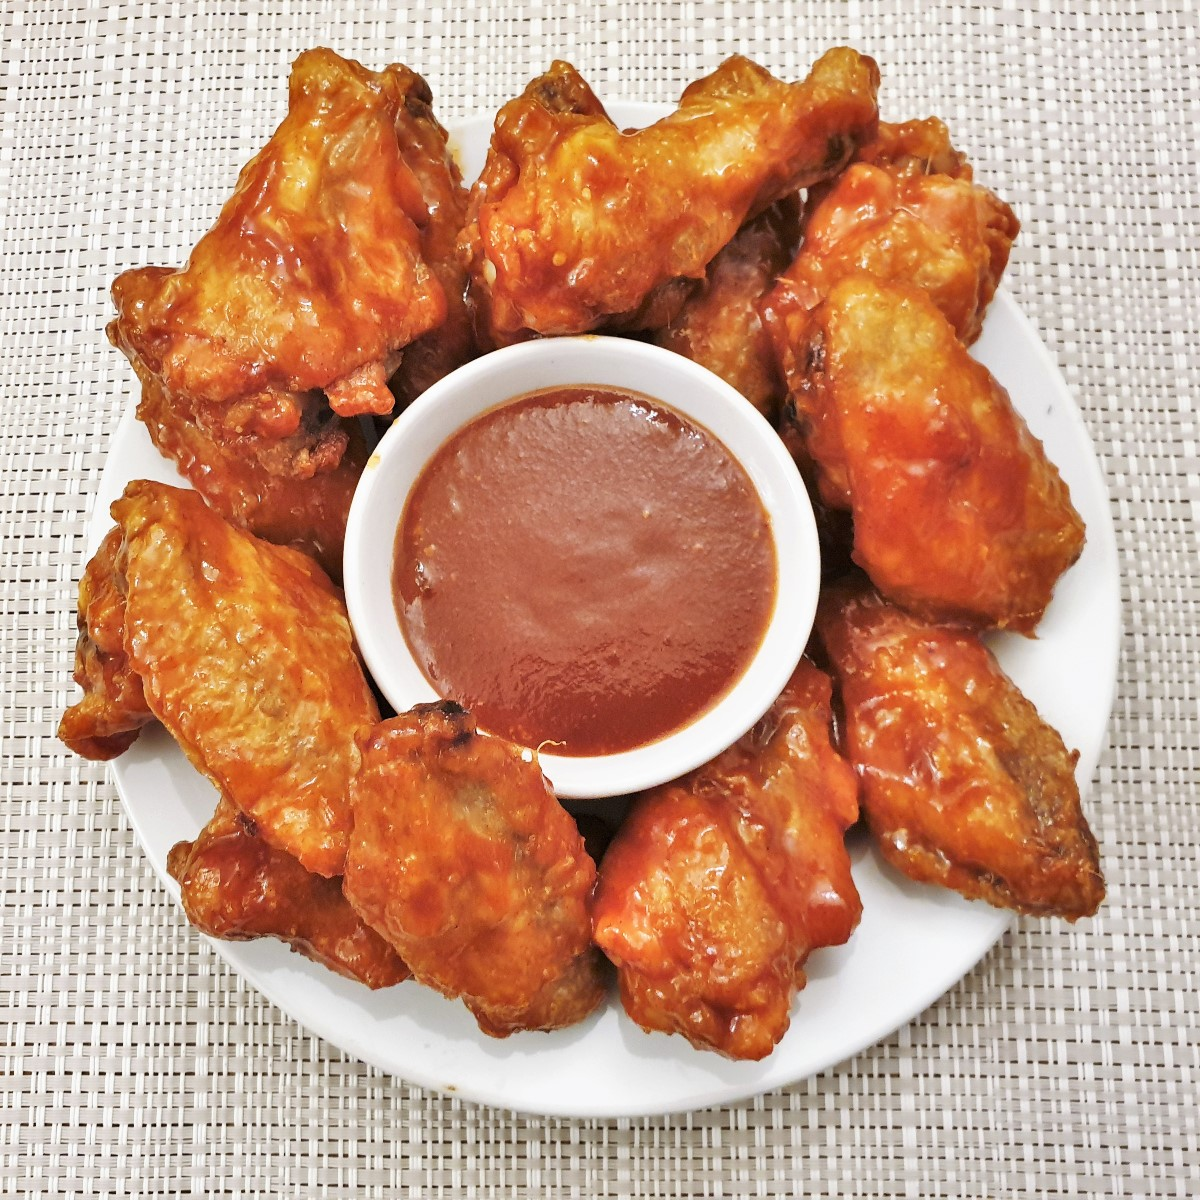 A plate of chicken wings surrounding a bowl of barbeque sauce.